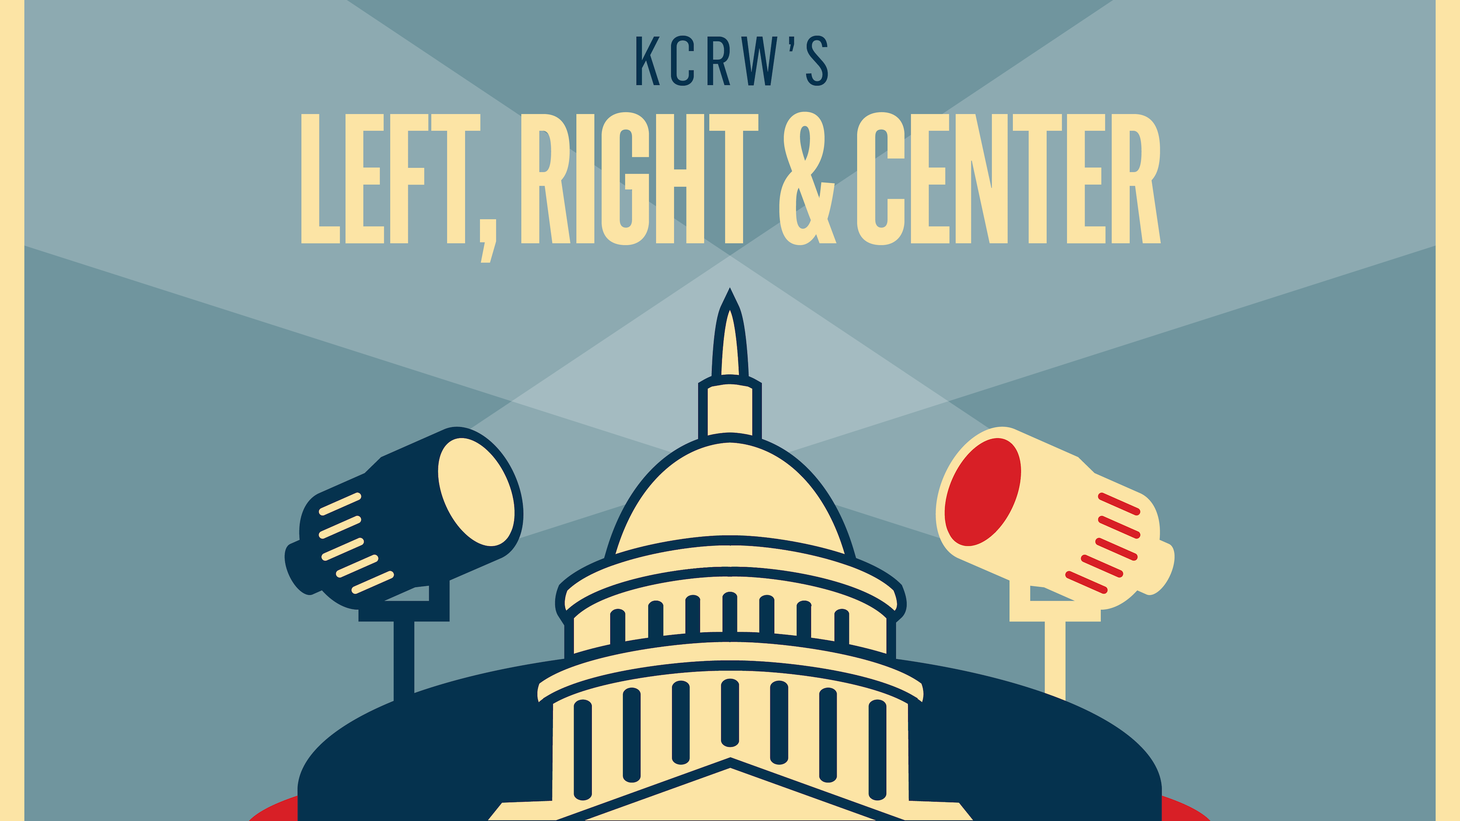 How did the debate go?  The 'left, right & center' team will let you know.